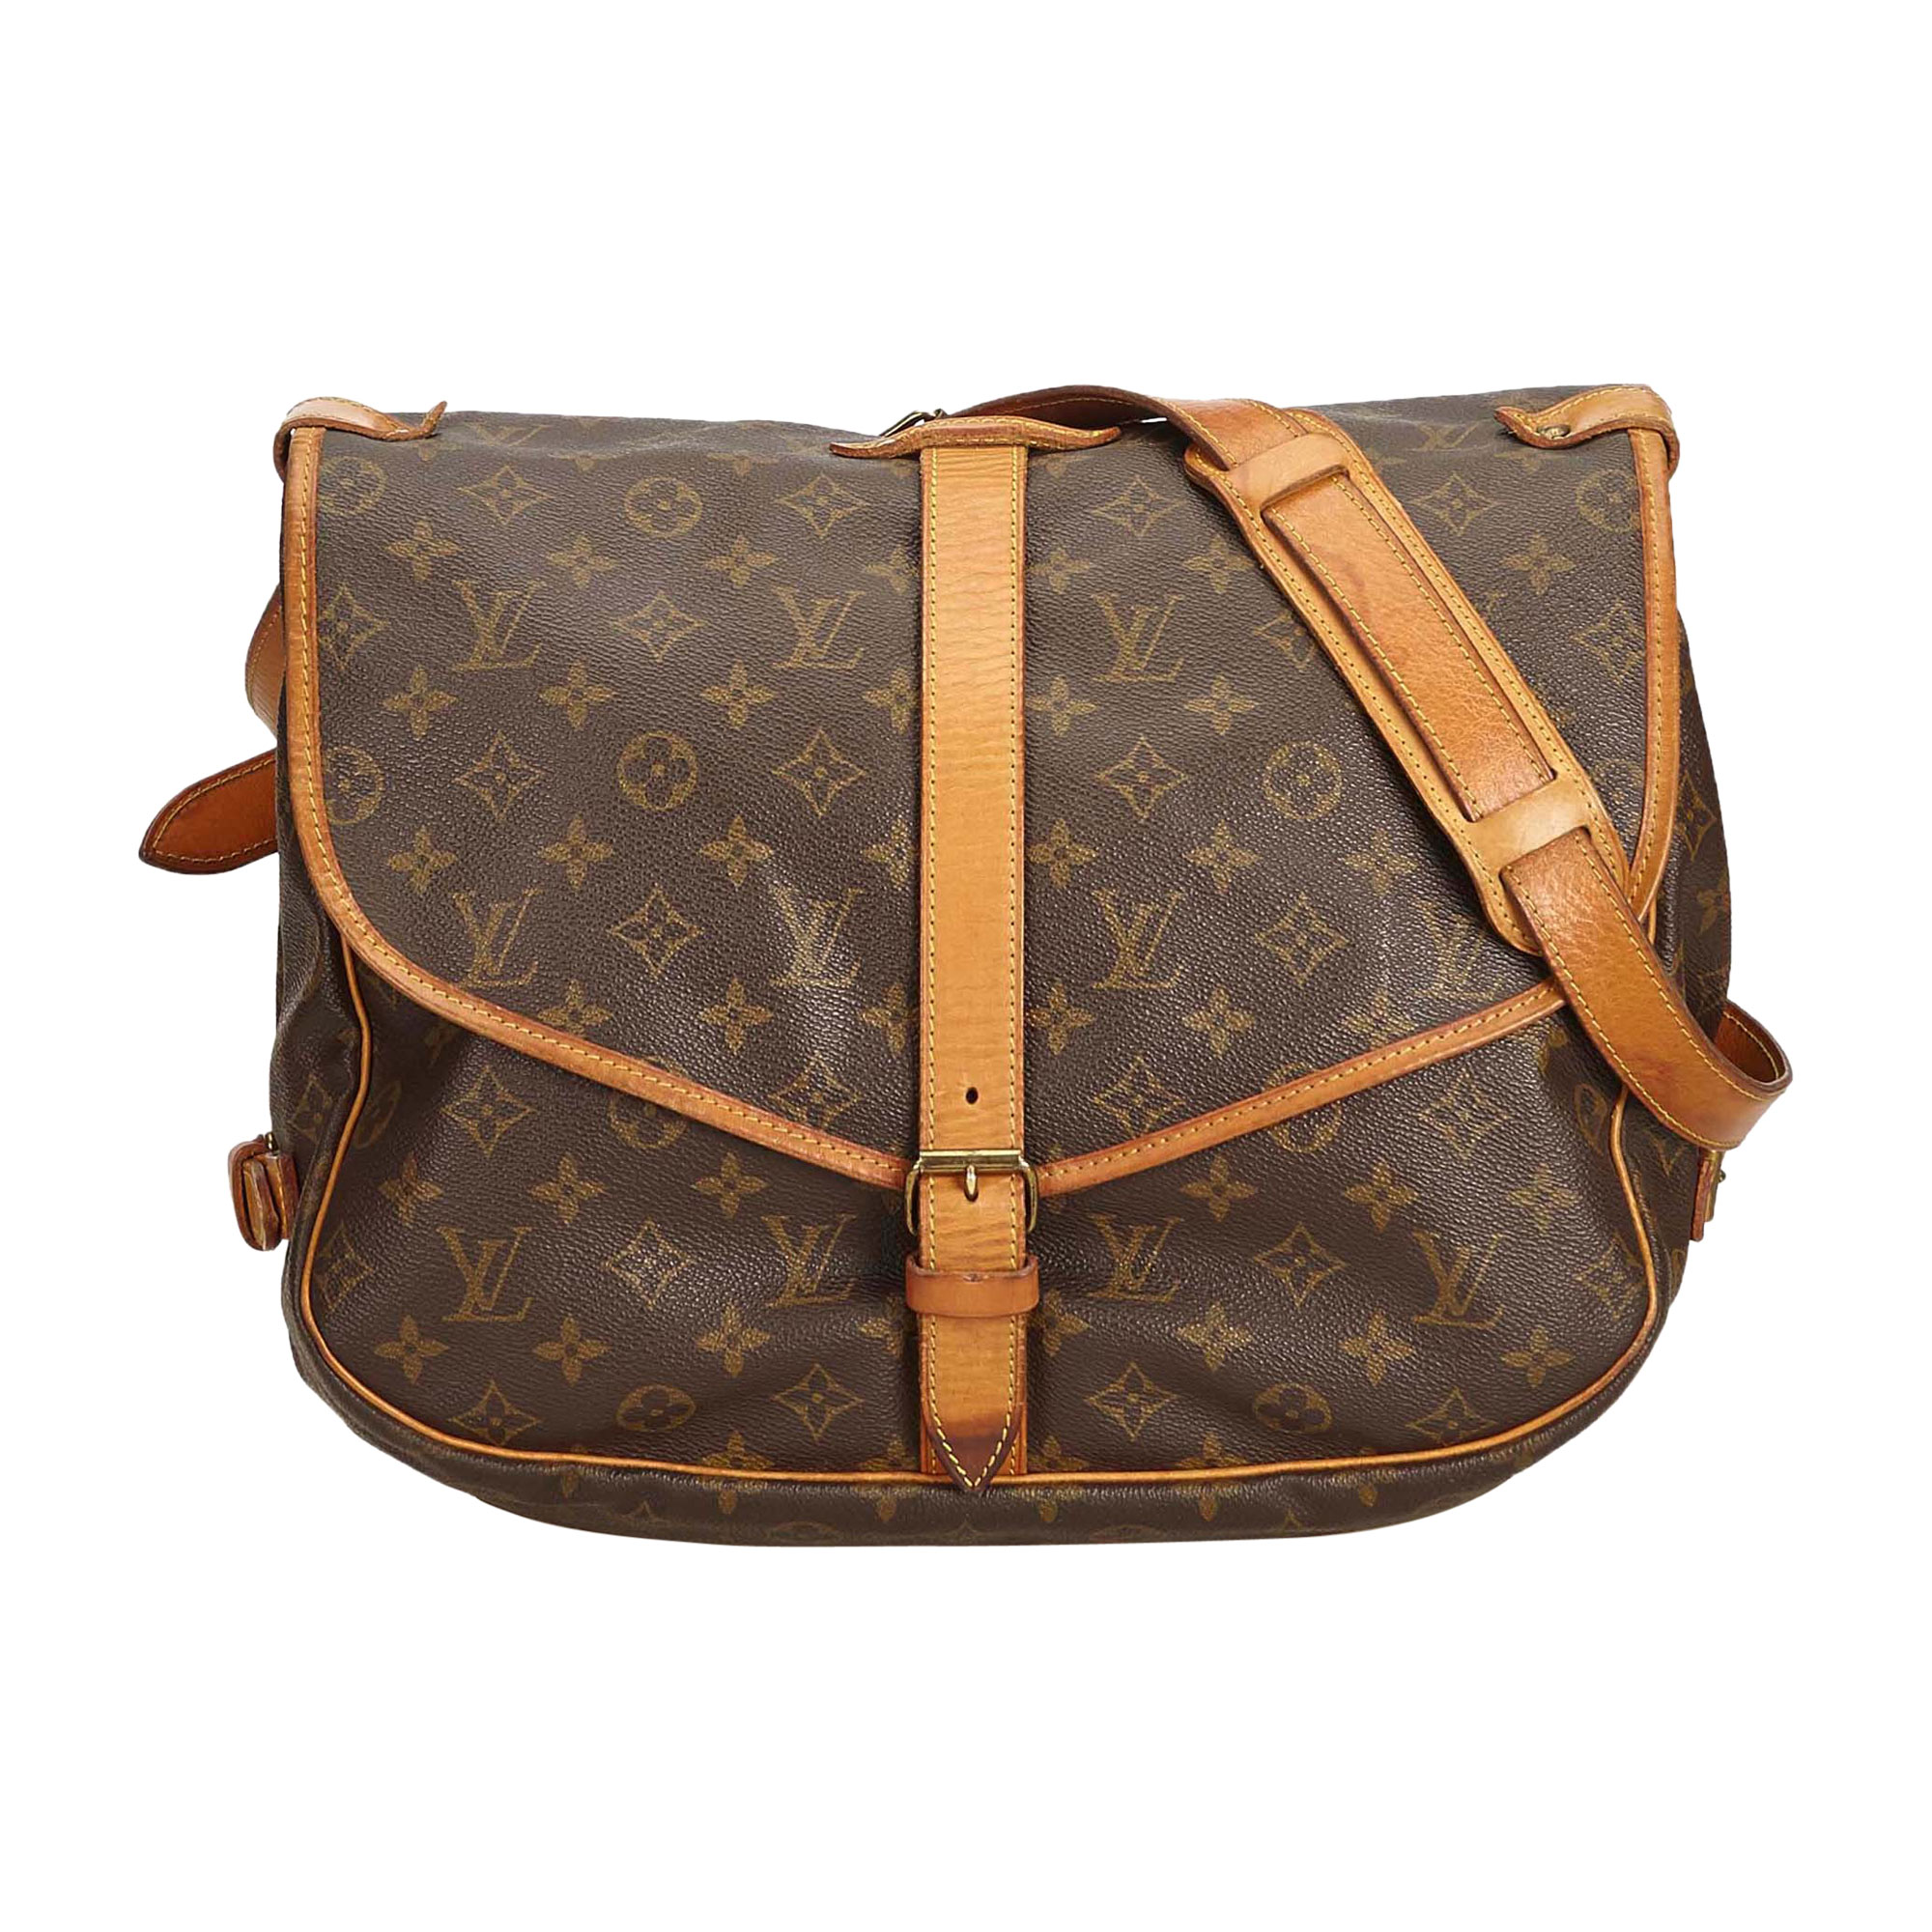 Sac en bandoulière en cuir LOUIS VUITTON brown - 8326969 678c32bf2a5